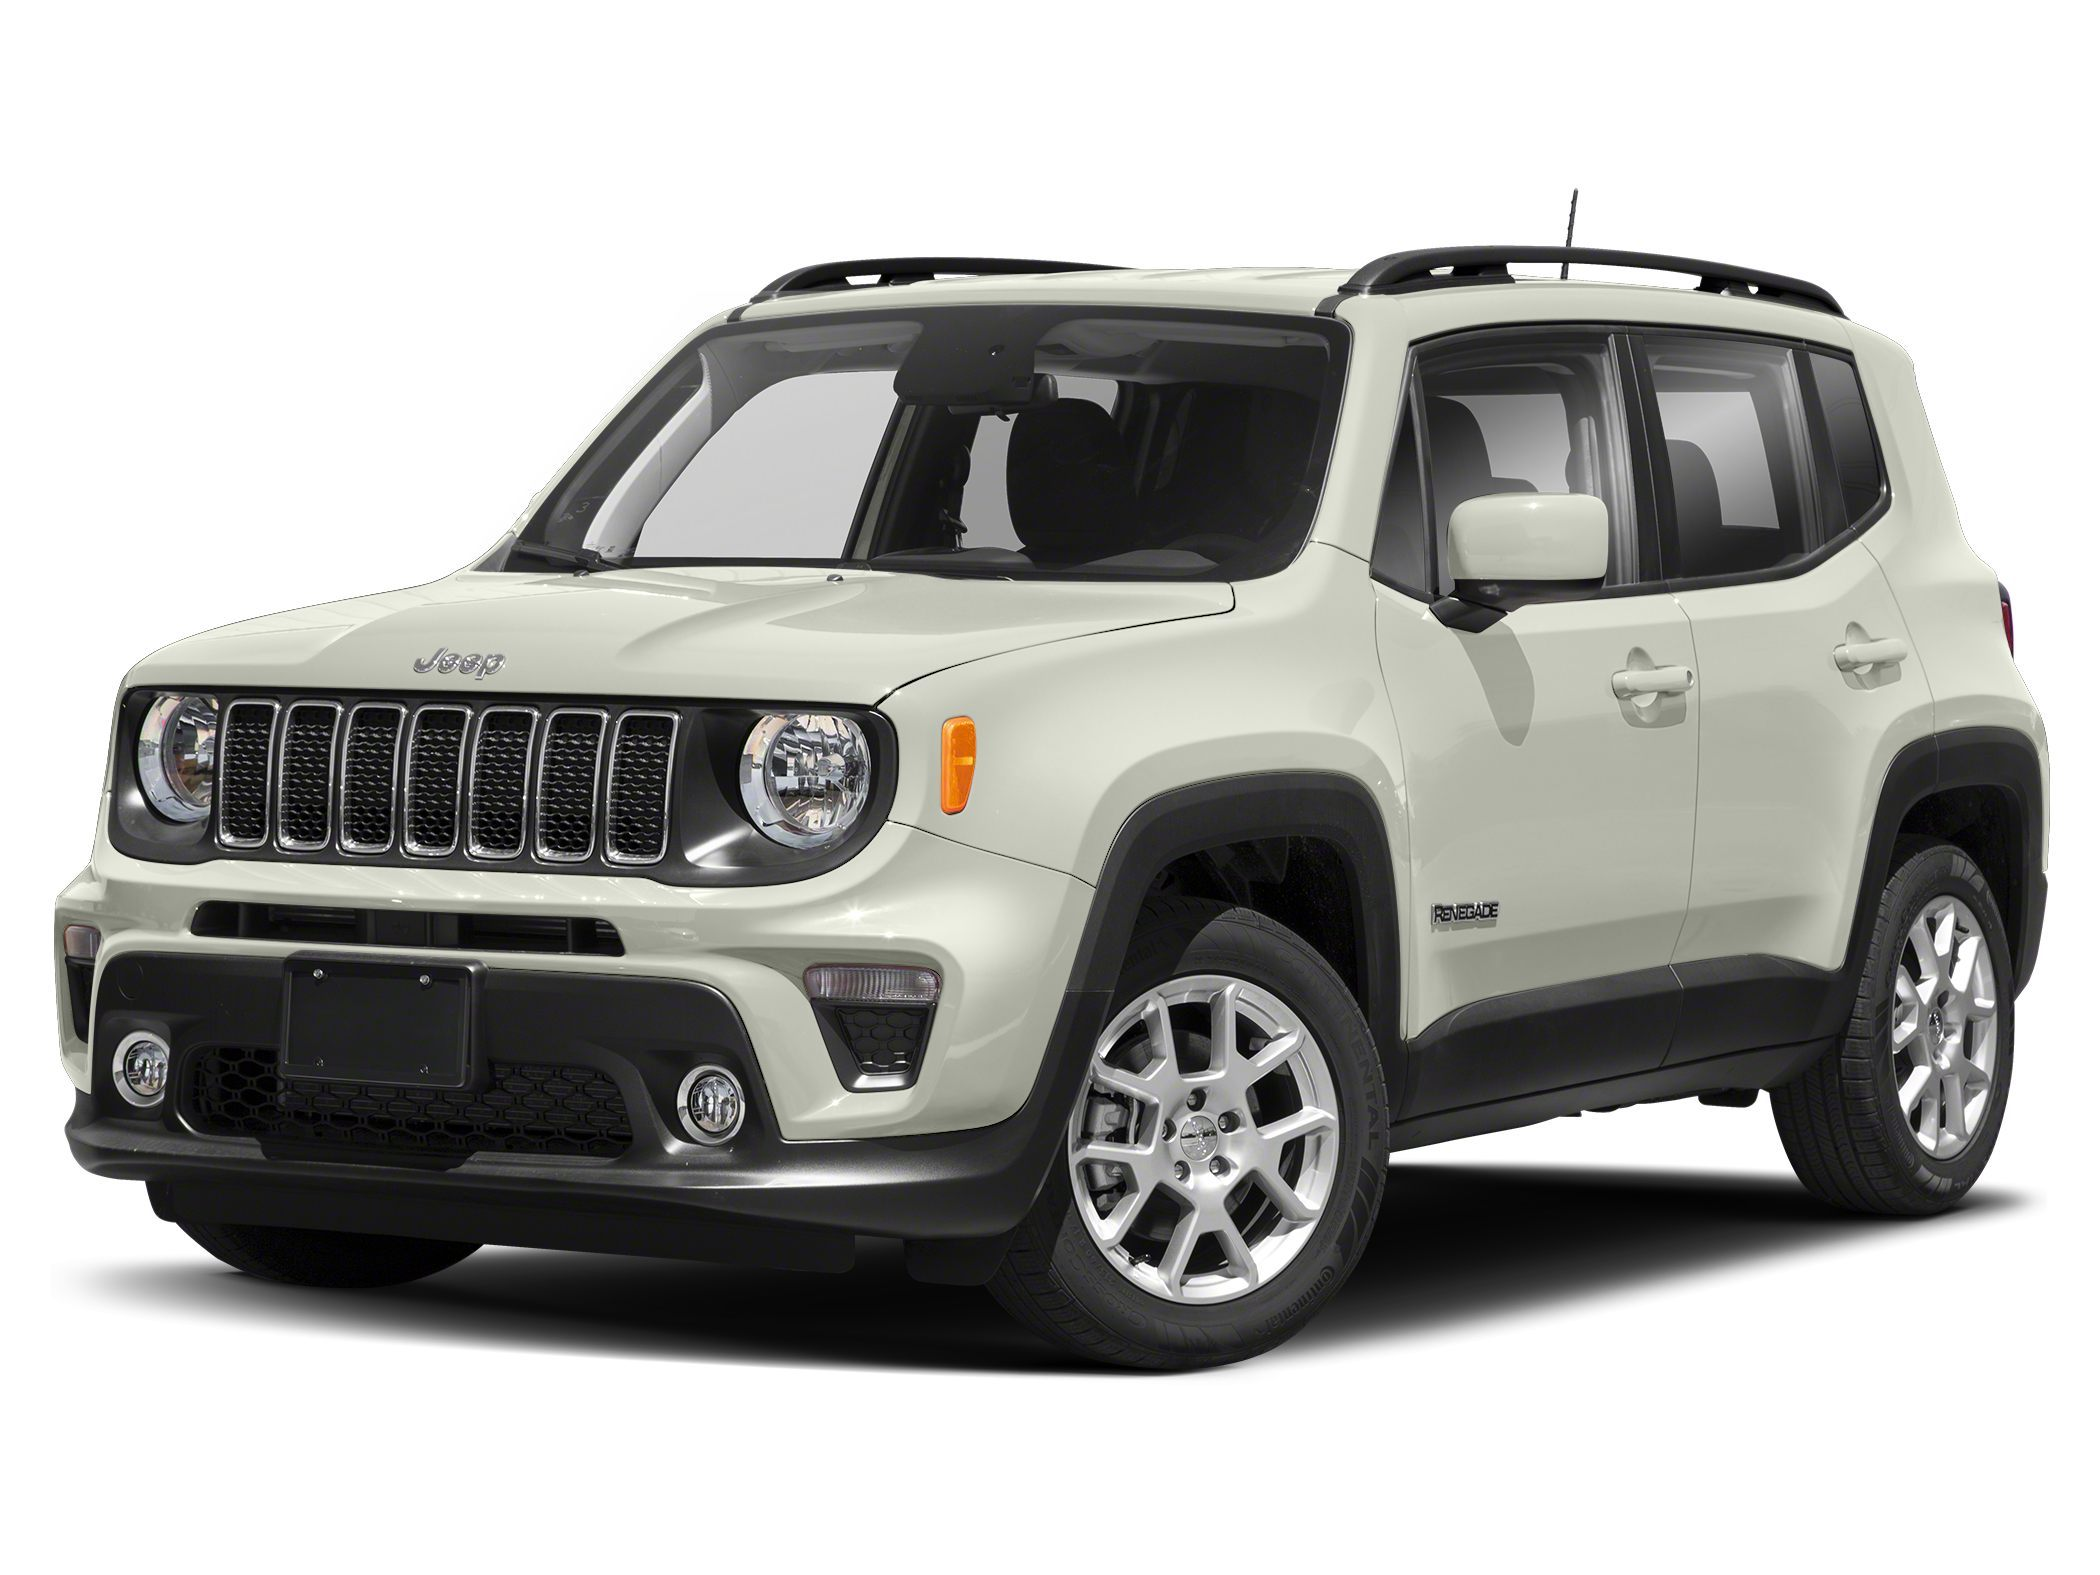 used 2019 Jeep Renegade car, priced at $30,500